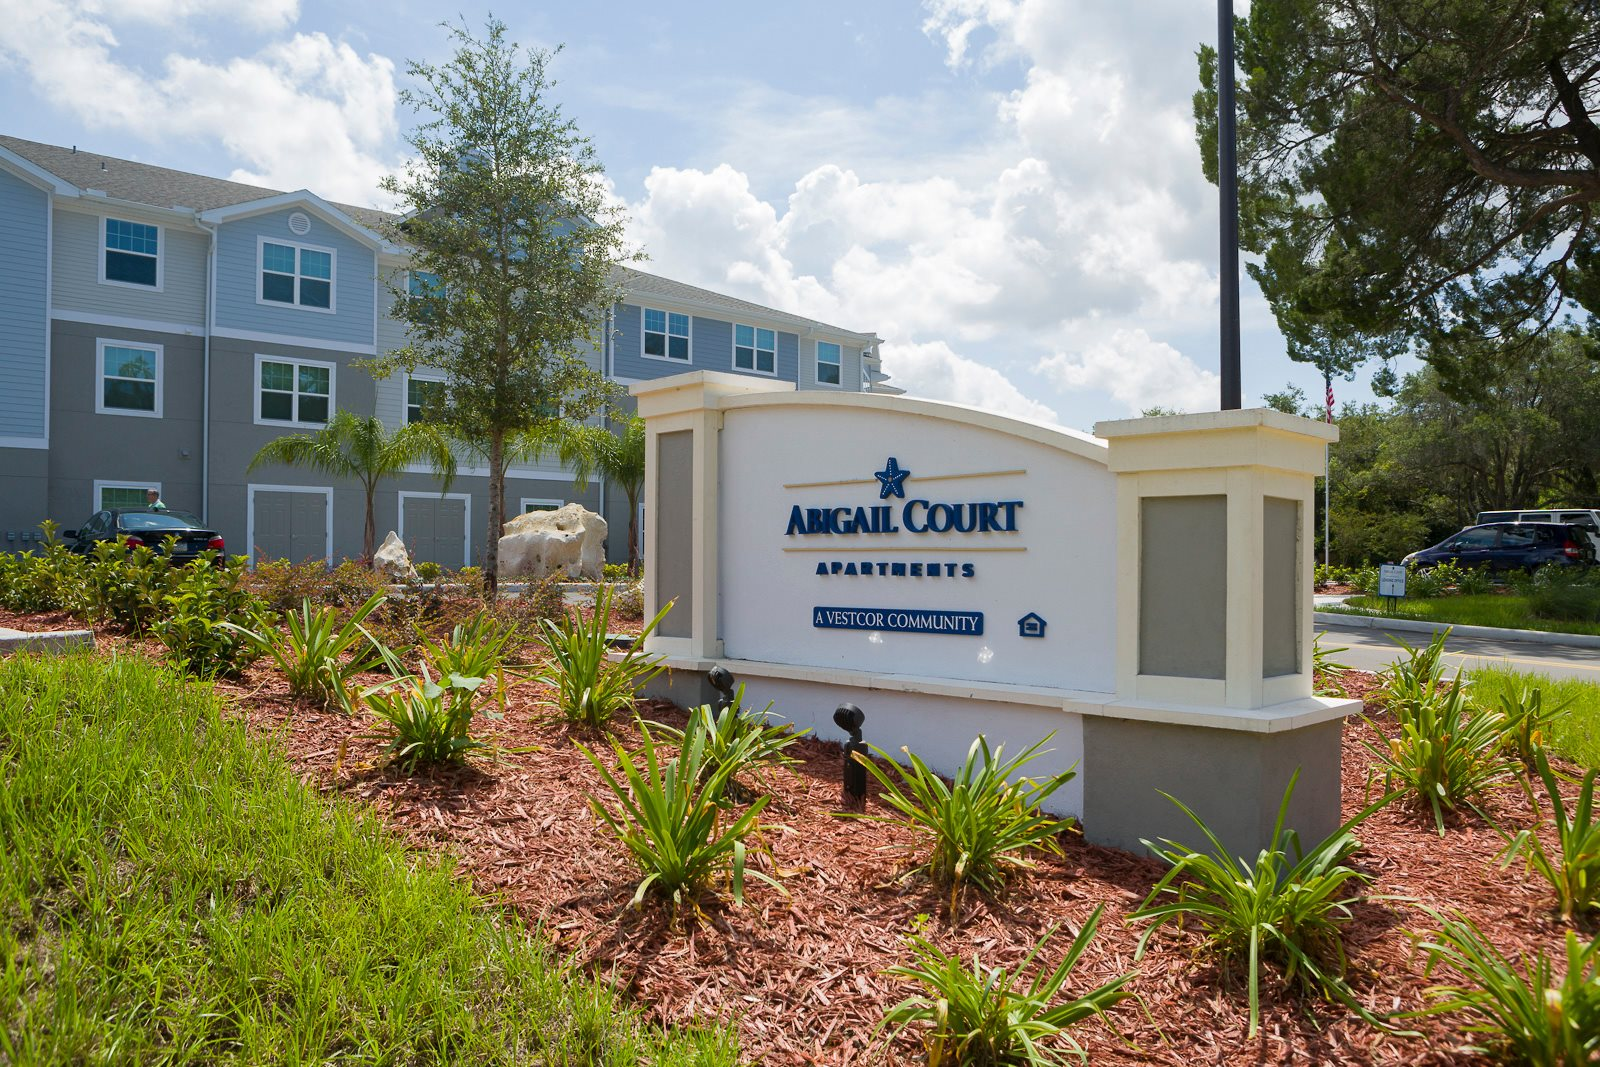 Abigail Court Apartments